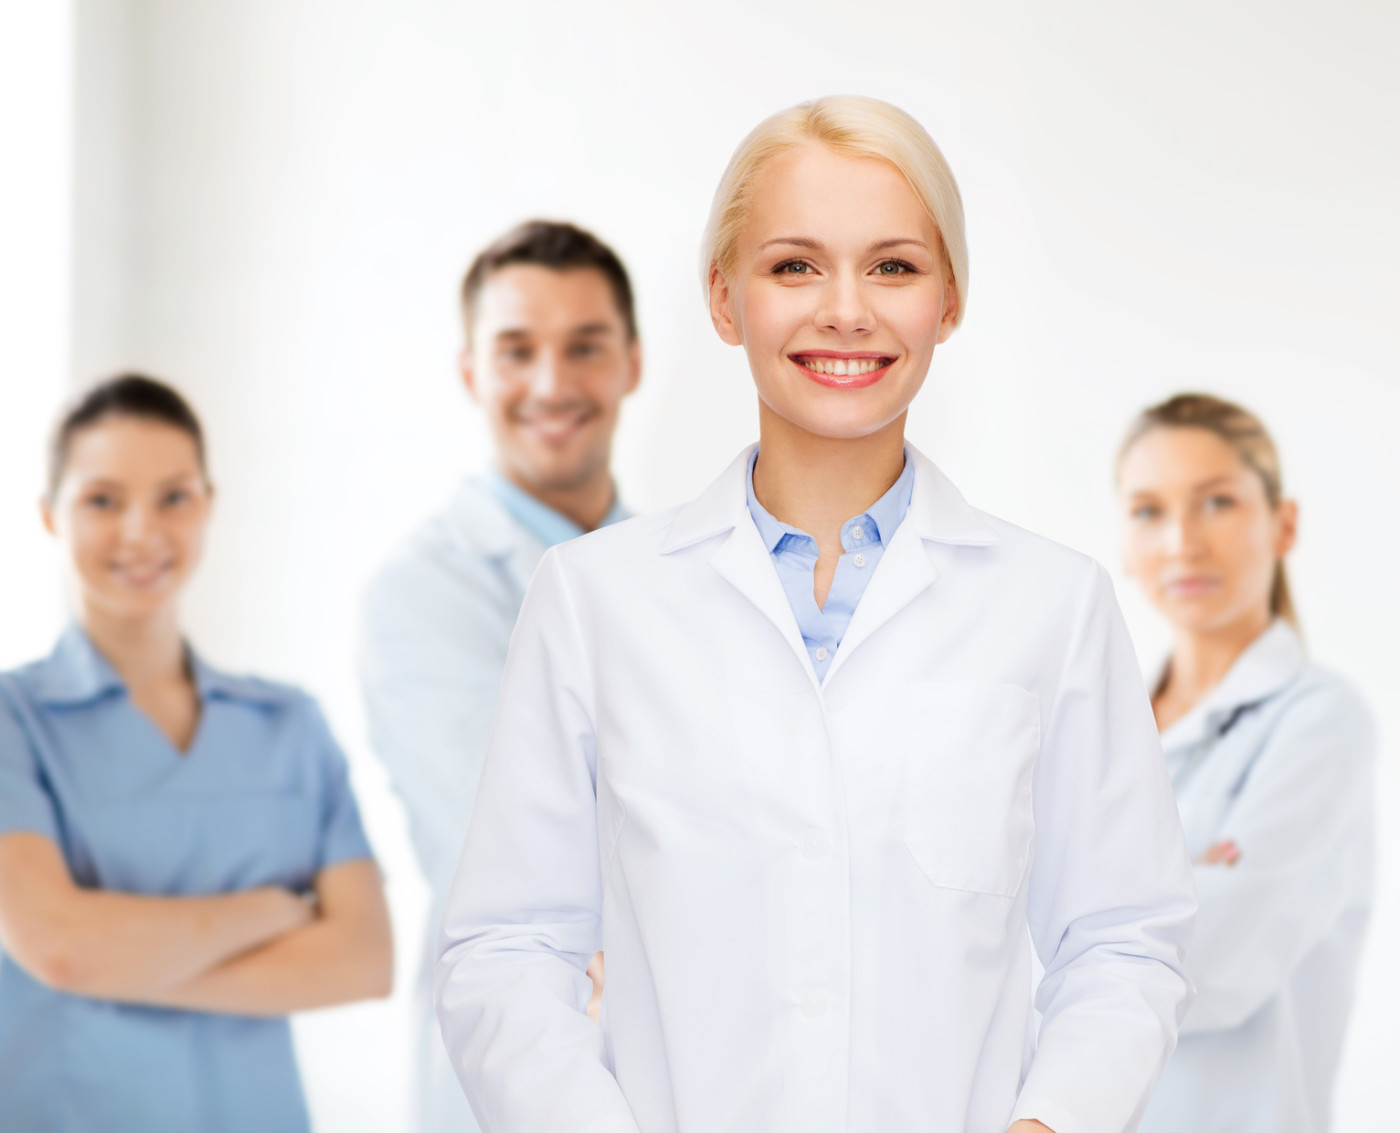 healthcare and medicine concept - smiling female doctor over group of medics in hospital